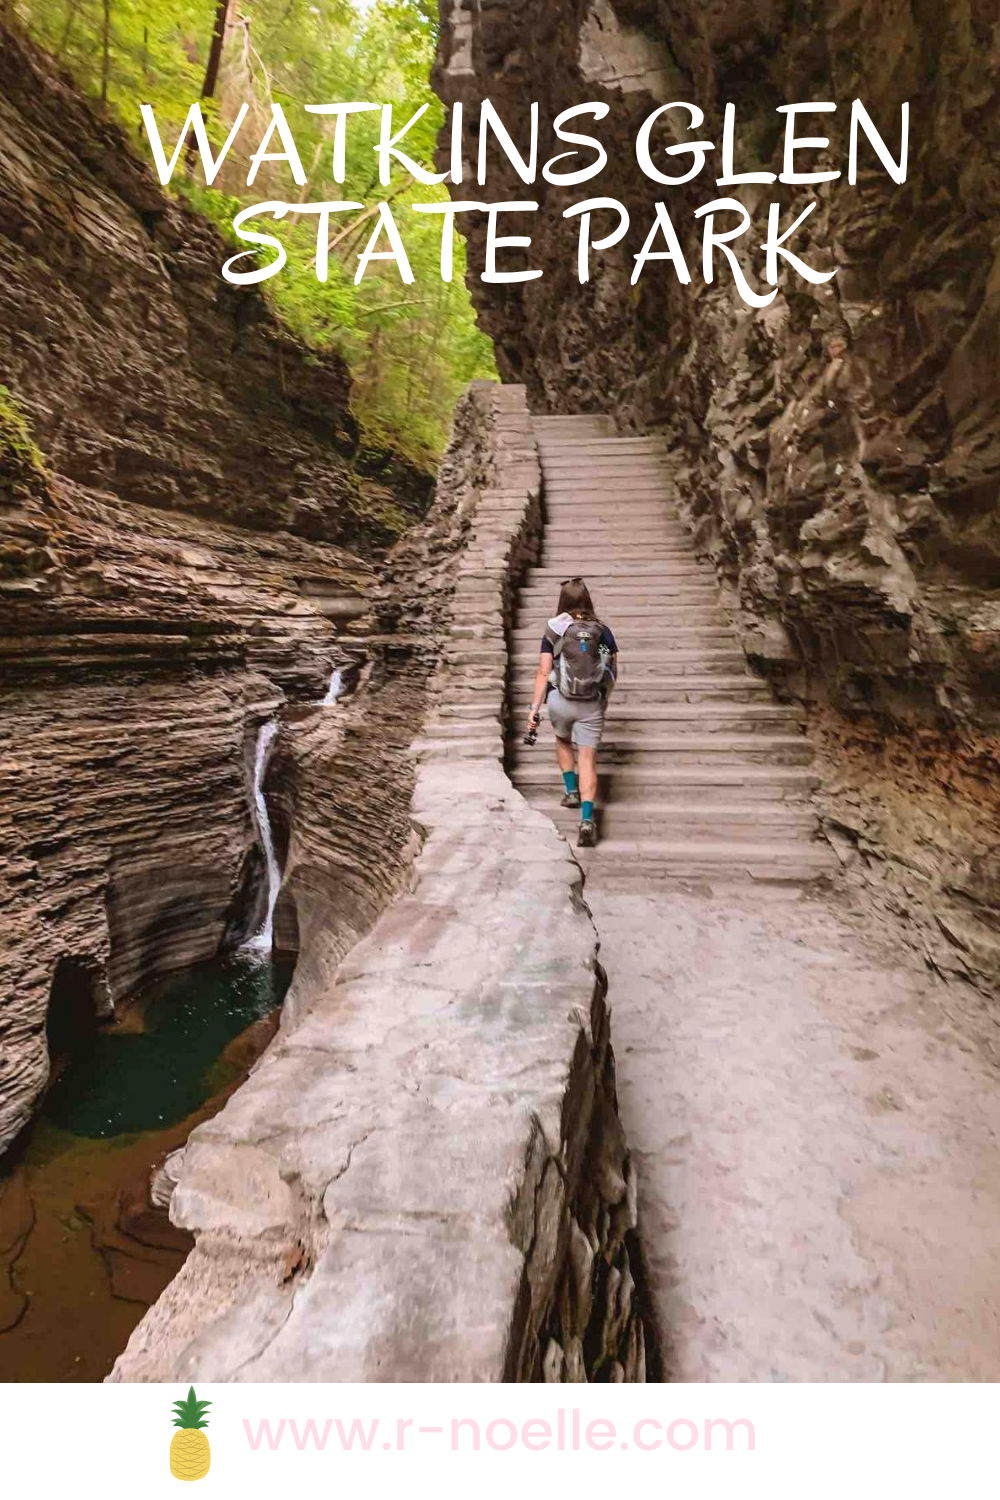 Plan a camping weekend to Watkins Glen State Park.There are so many things to do in Watkins Glen. Hike through the gorge, camp nearby, and love the waterfalls in the gorge trail. Finger Lakes is known for their gorges and have amazing campground for all to enjoy!